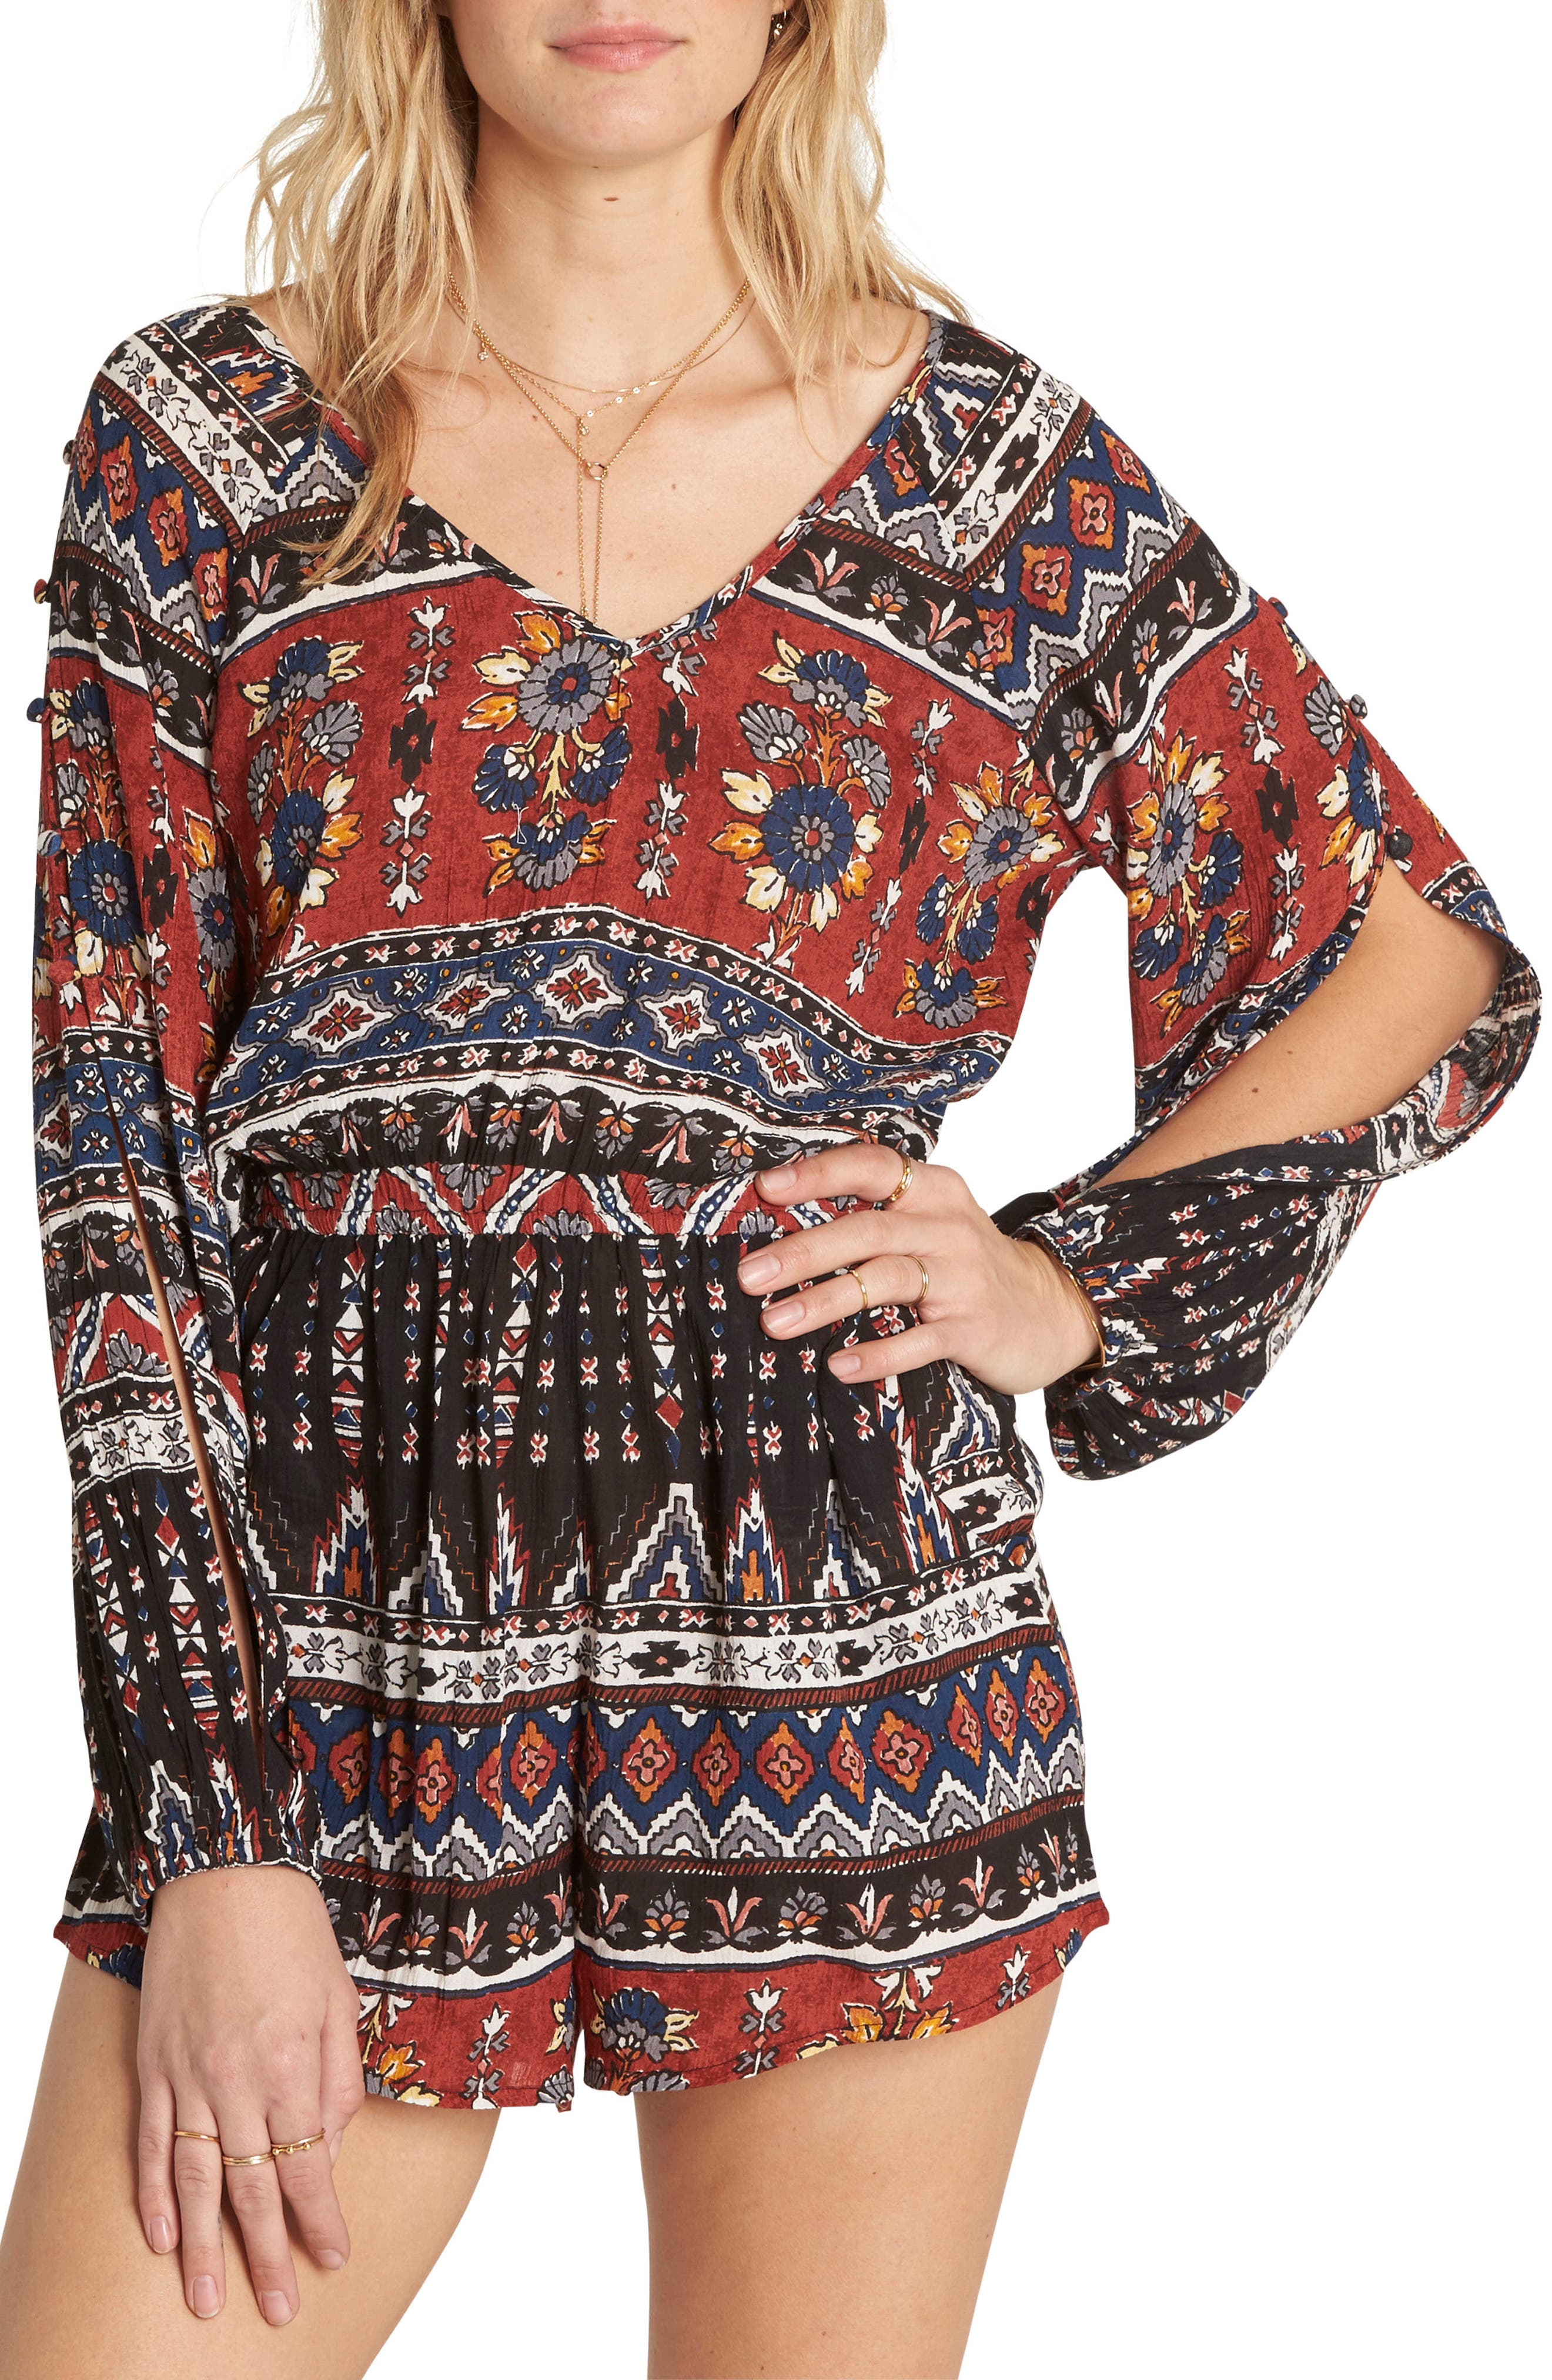 Isles of the Heart Print Romper,                         Main,                         color, Multi